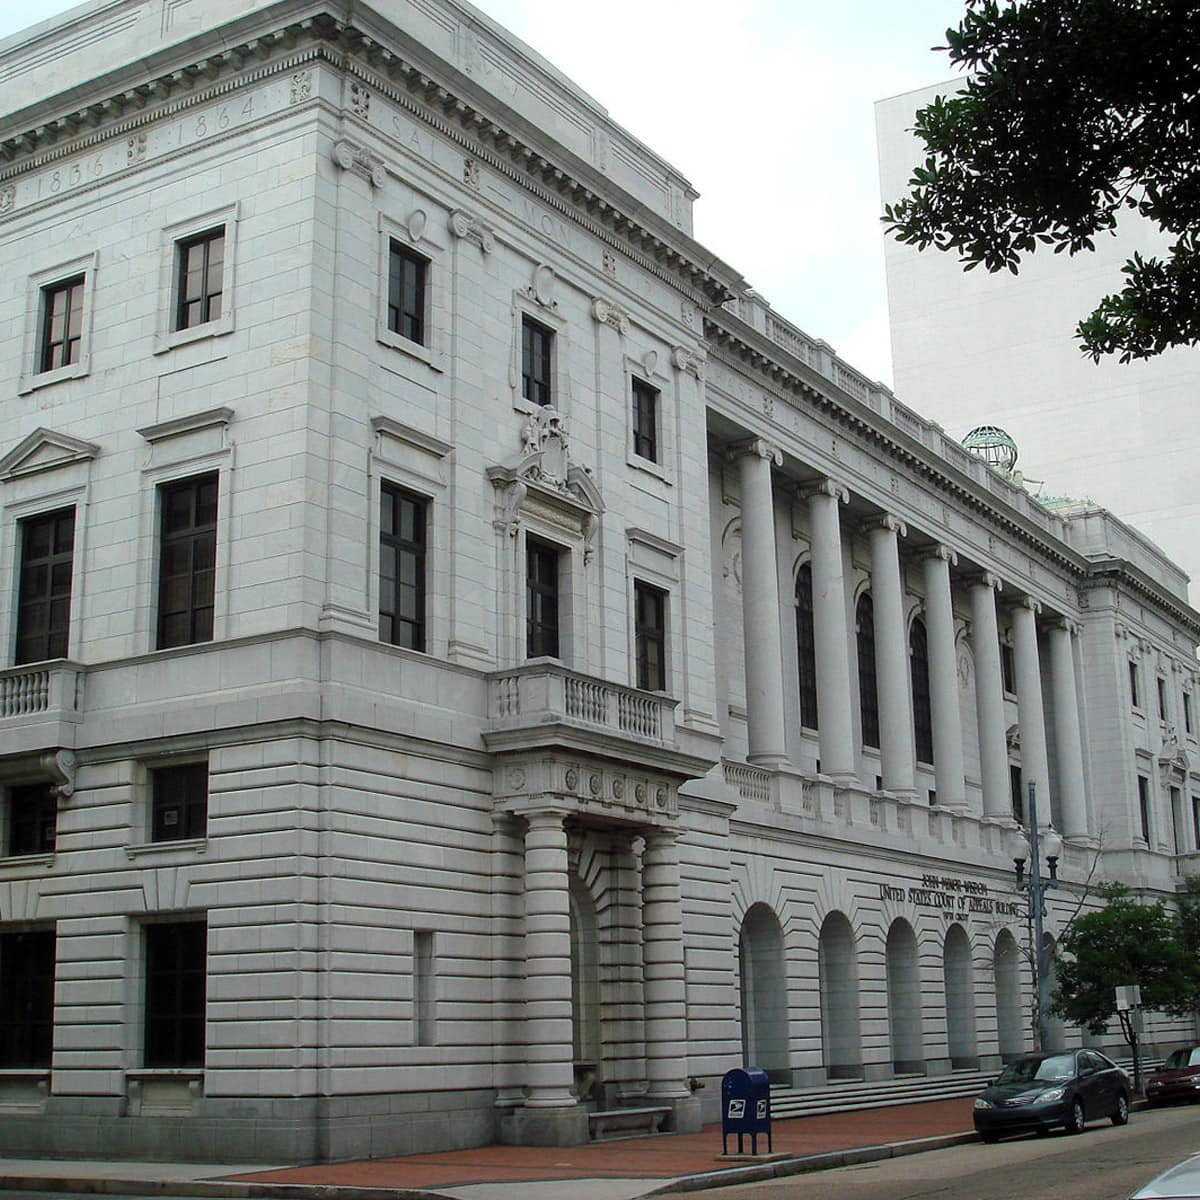 United States Fifth Circuit Court of Appeals